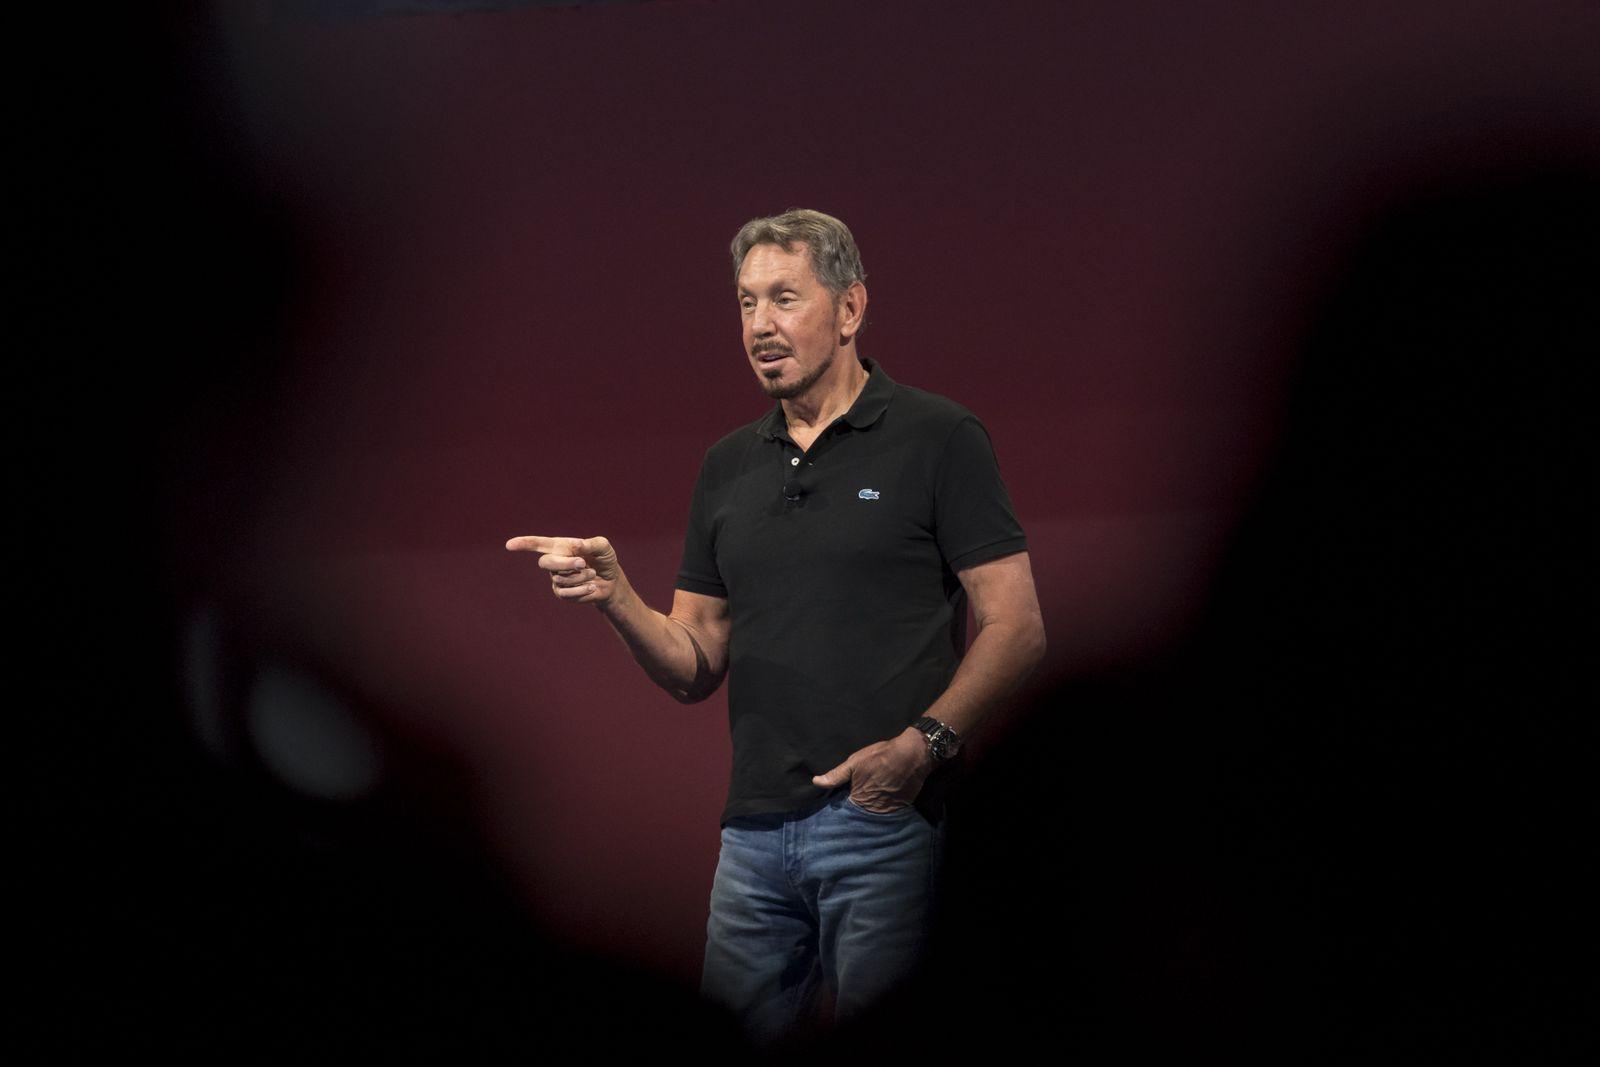 Key Speakers At The Oracle OpenWorld 2017 Conference